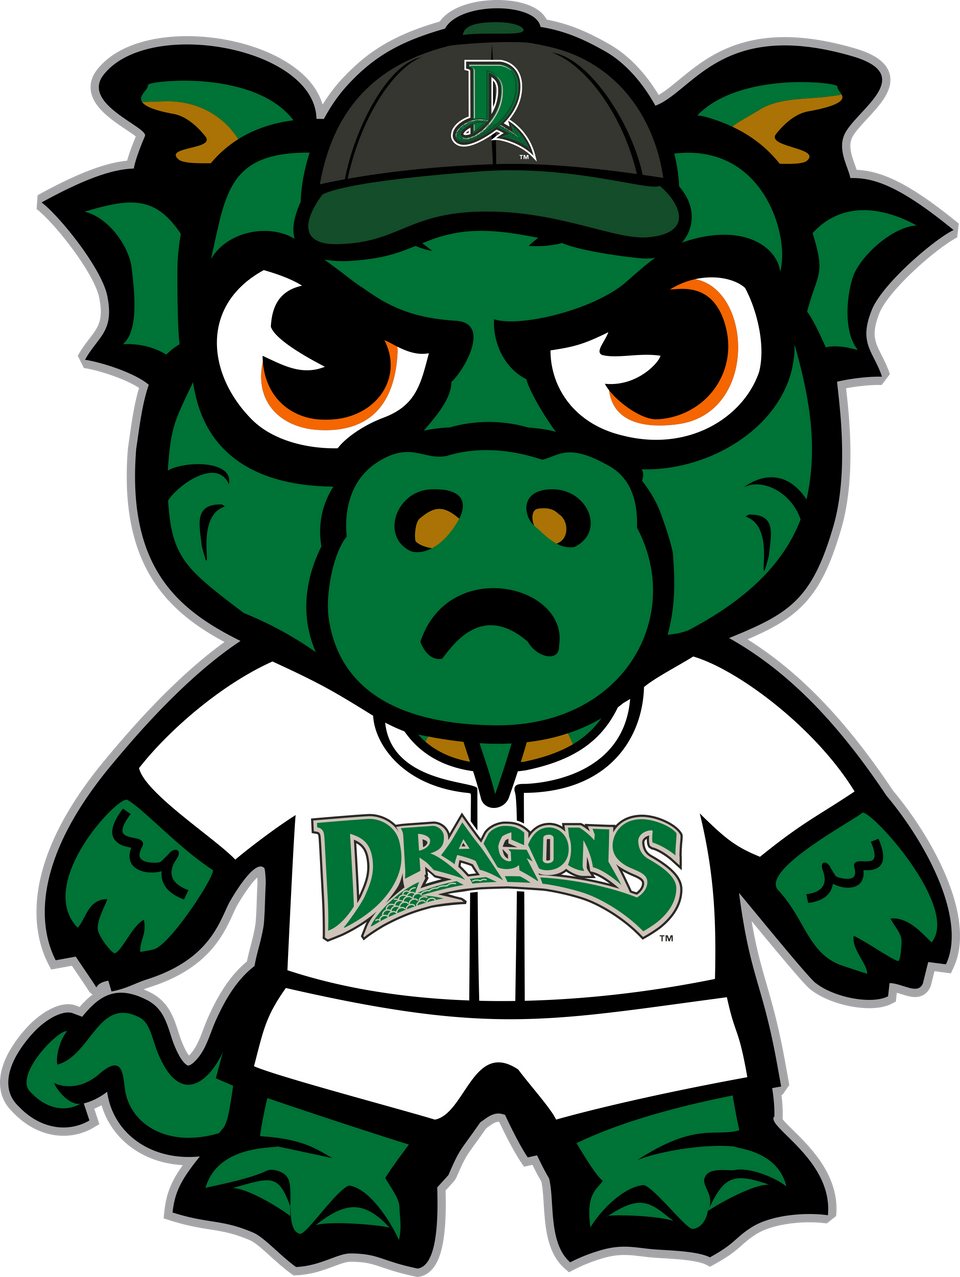 collections/Dayton_Dragons.png